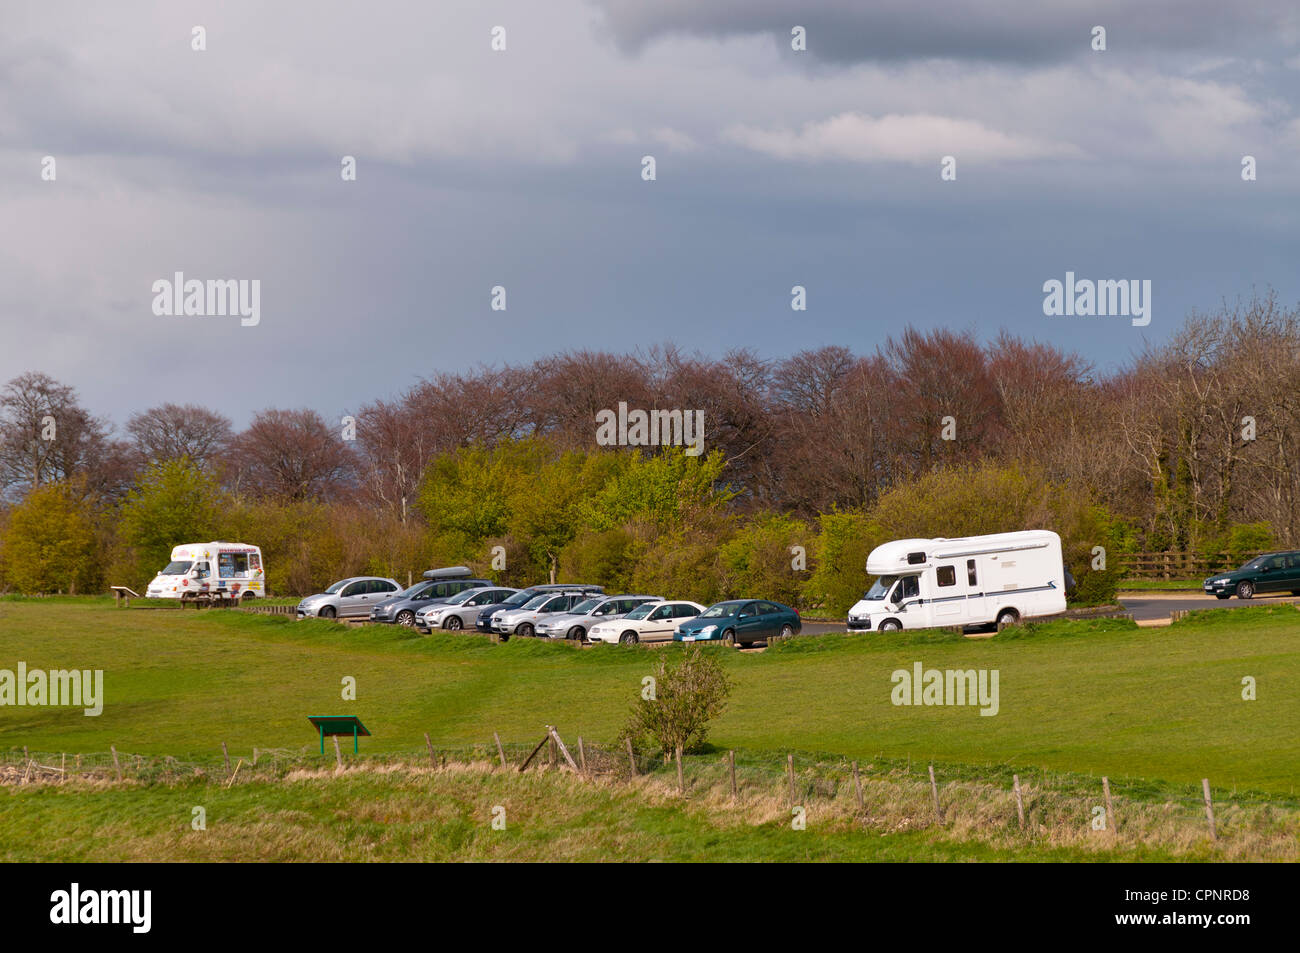 Picnic Site Stock Photos Amp Picnic Site Stock Images Alamy